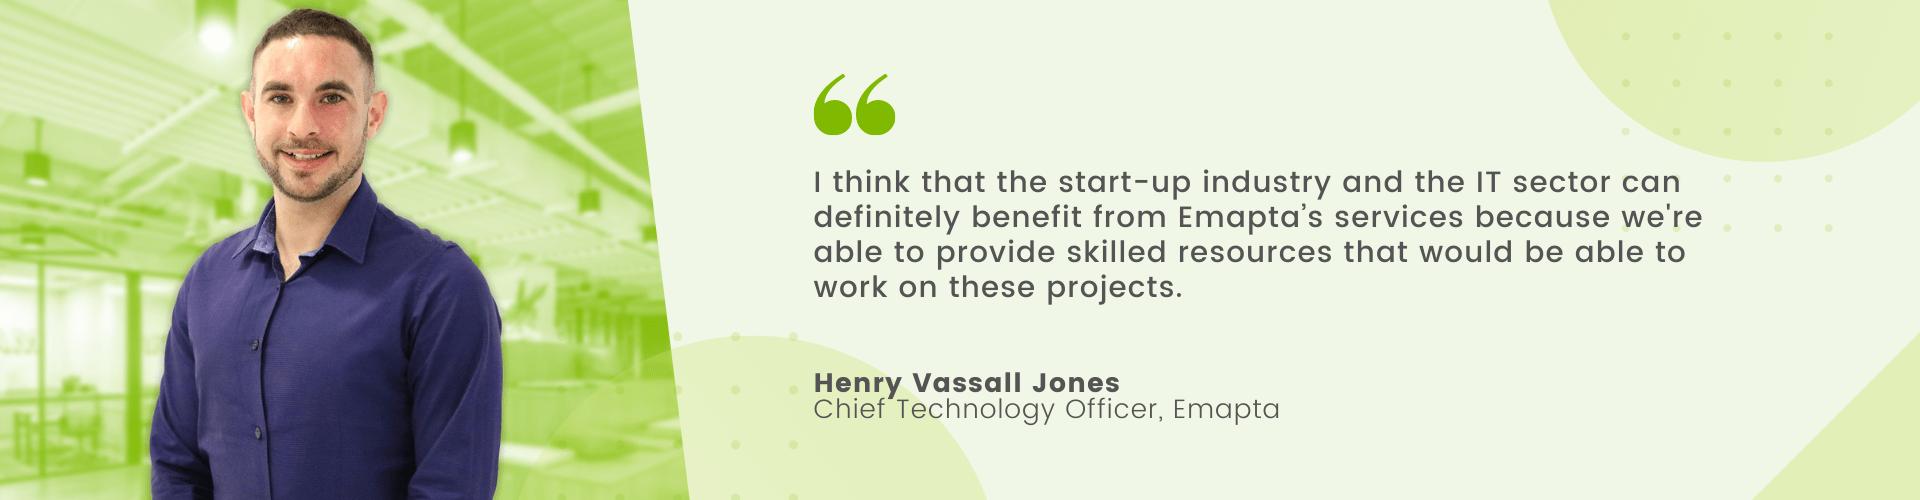 Thought about AI by Henry Vassall Jones.